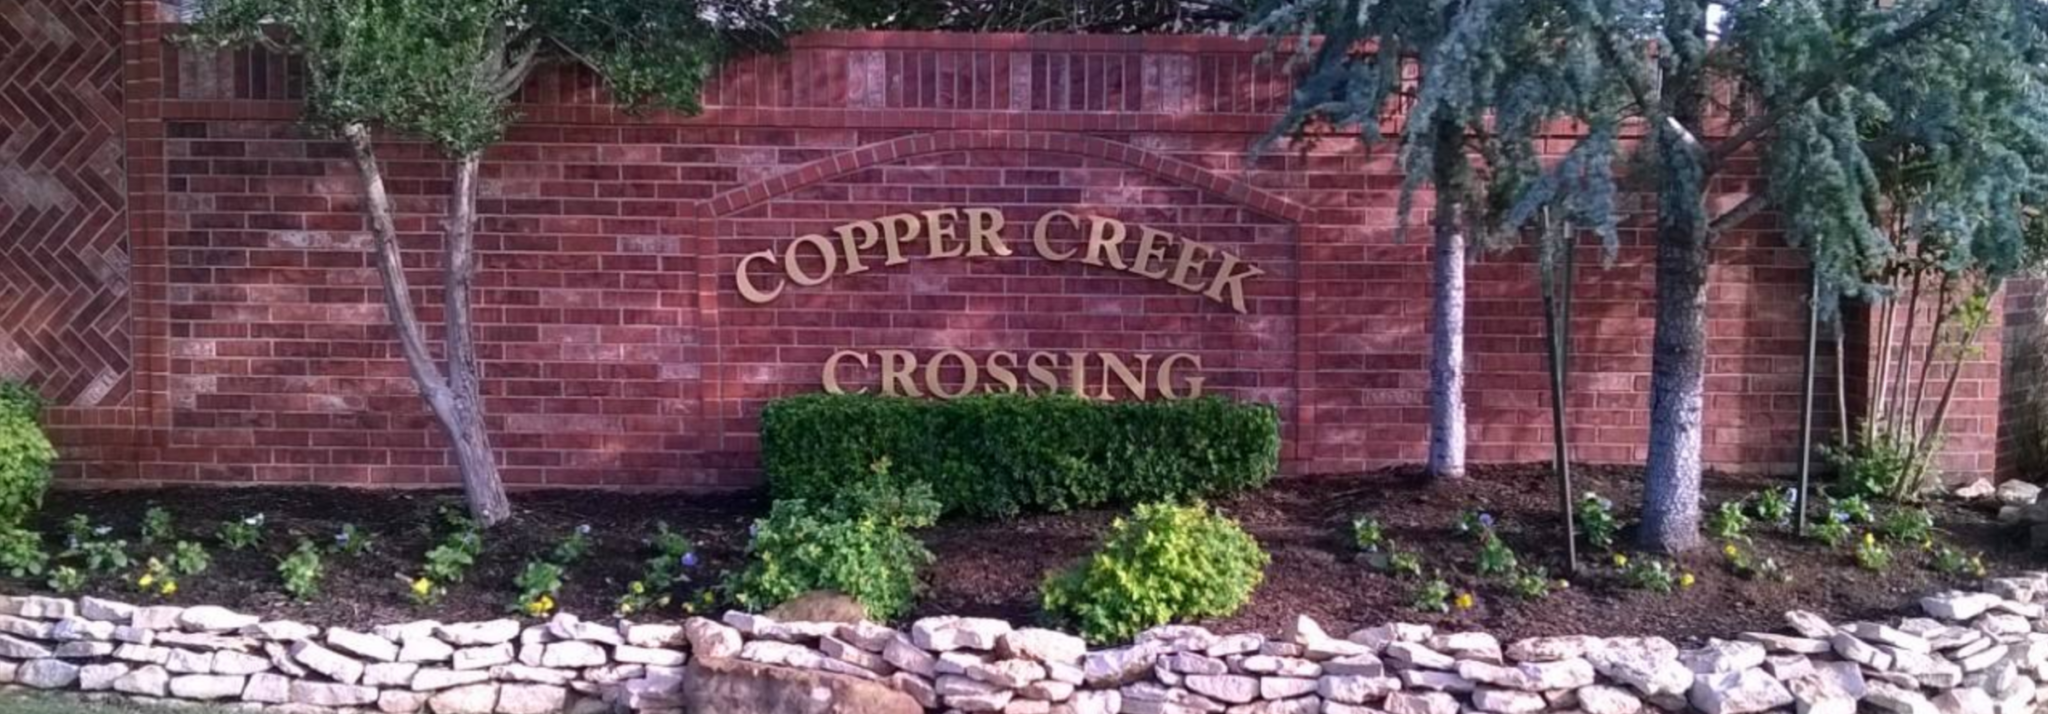 Welcome to the Copper Creek Crossing HOA